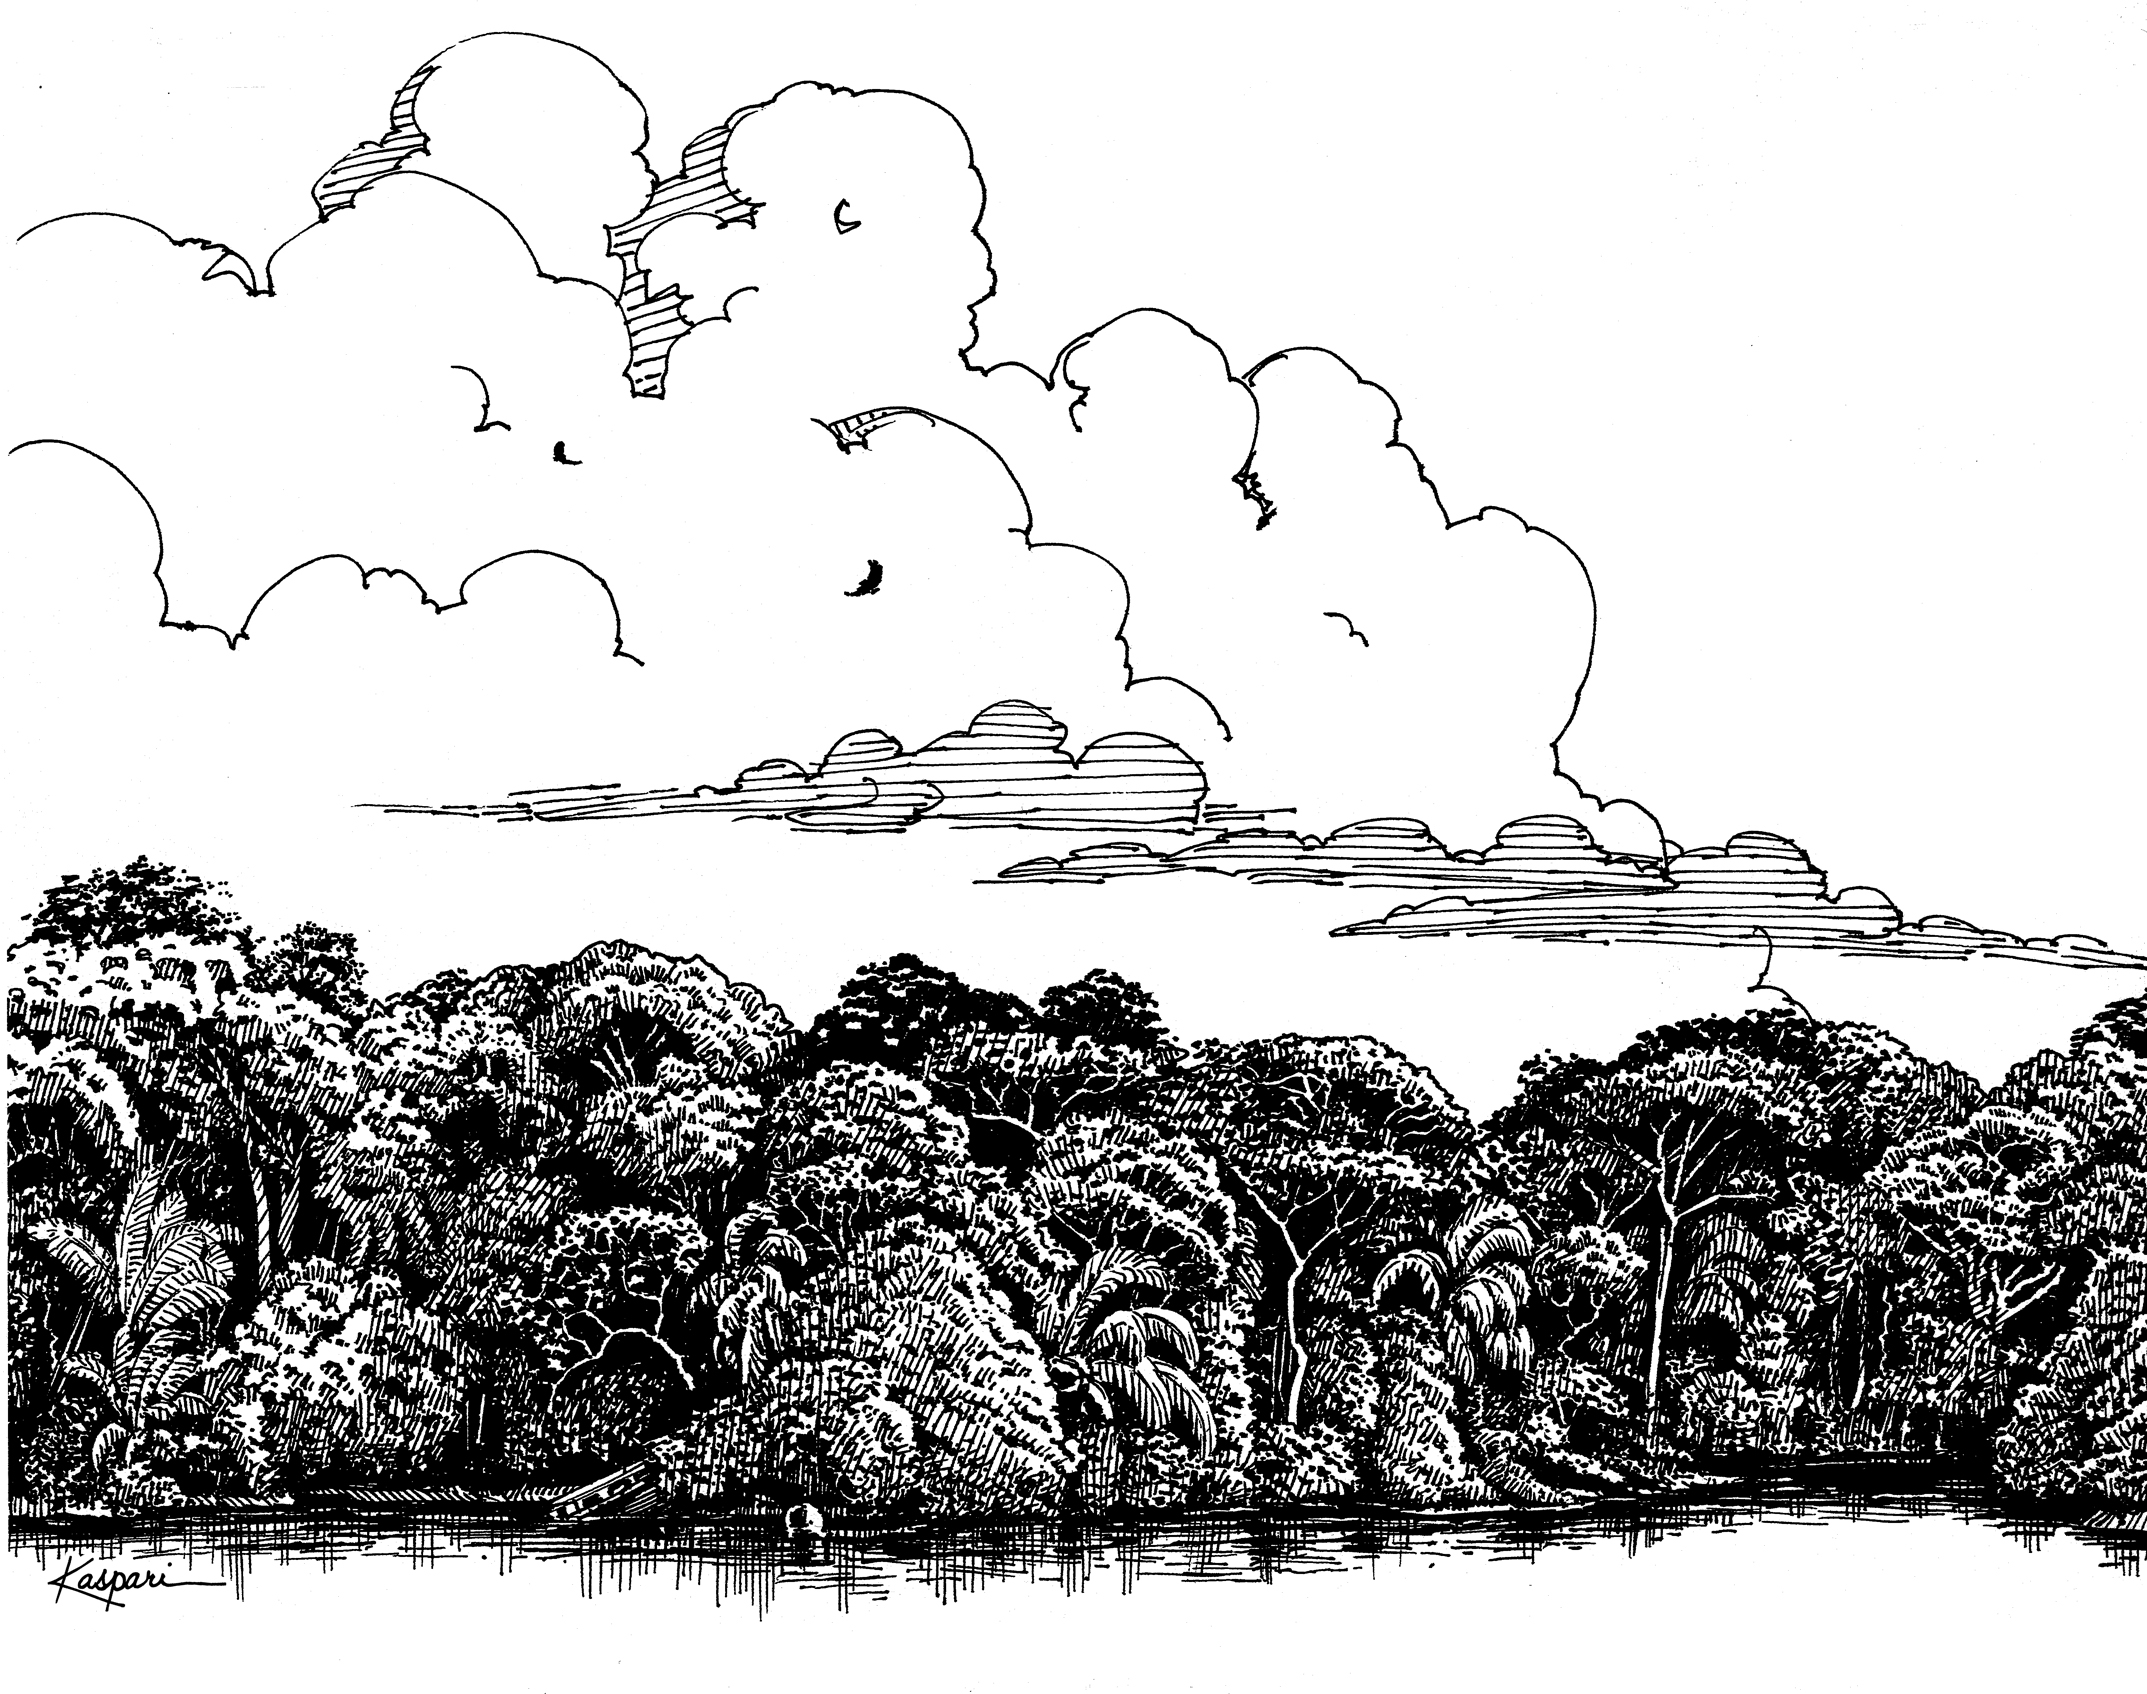 Drawn rainforest pen and ink Ink Pen Original An Drawings